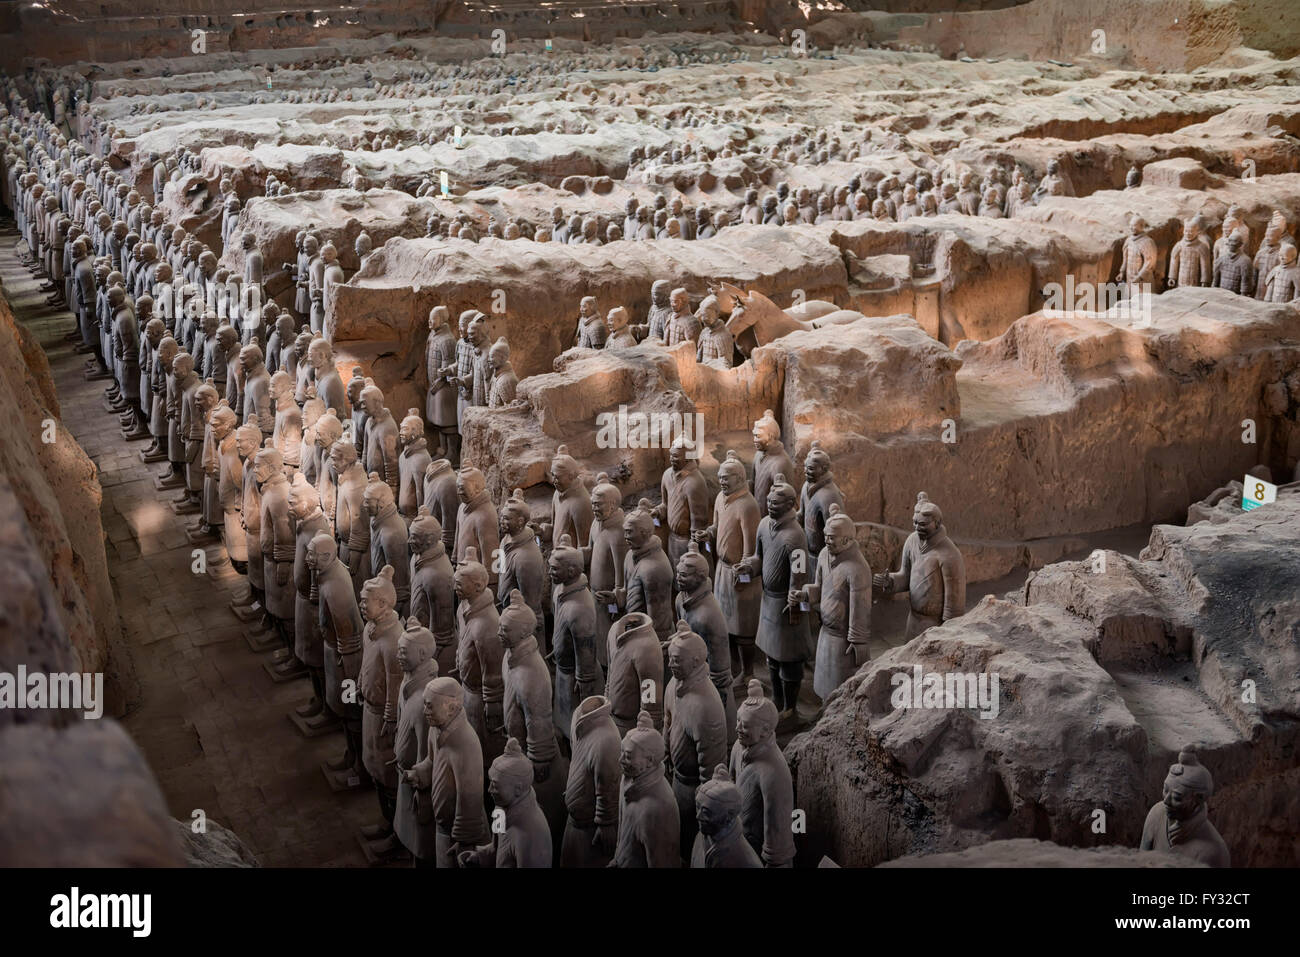 Qin Terracotta Warriors and Horses historic site, Xi'an, Shaanxi, China Stock Photo